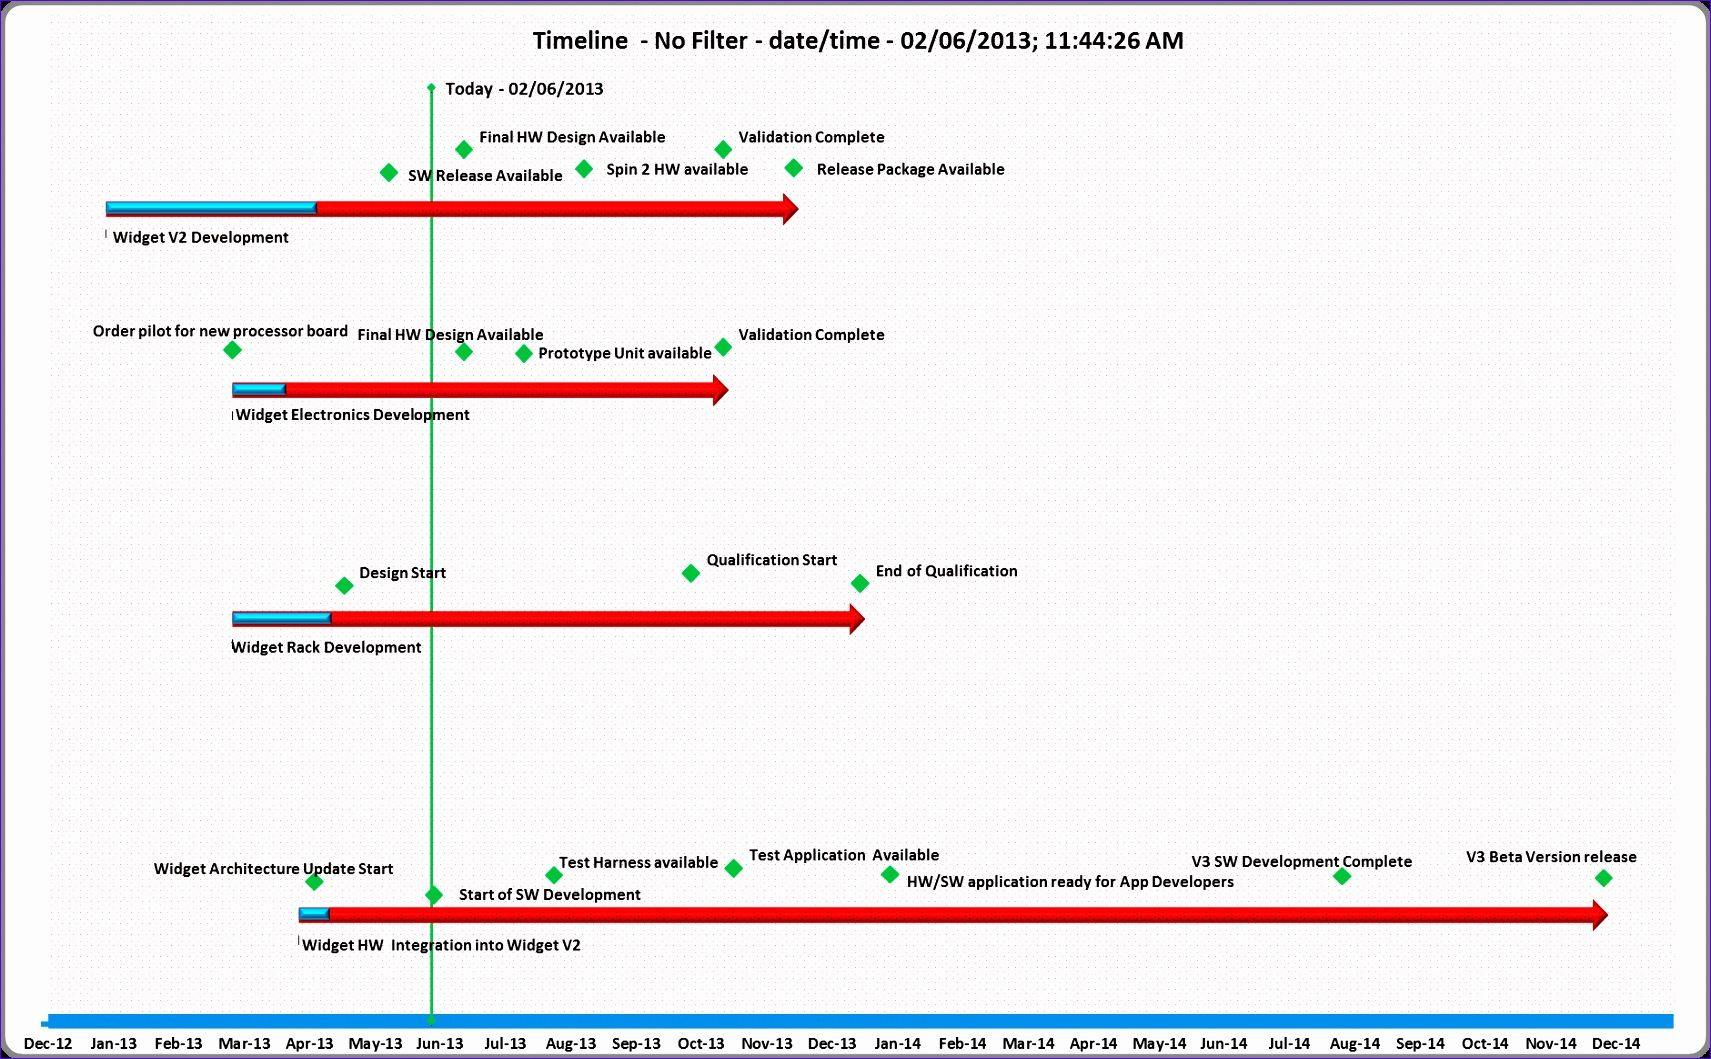 Excel 2007 Timeline Template Beyah Luxury Generate A Timeline Automatically From Your Gantt Chart